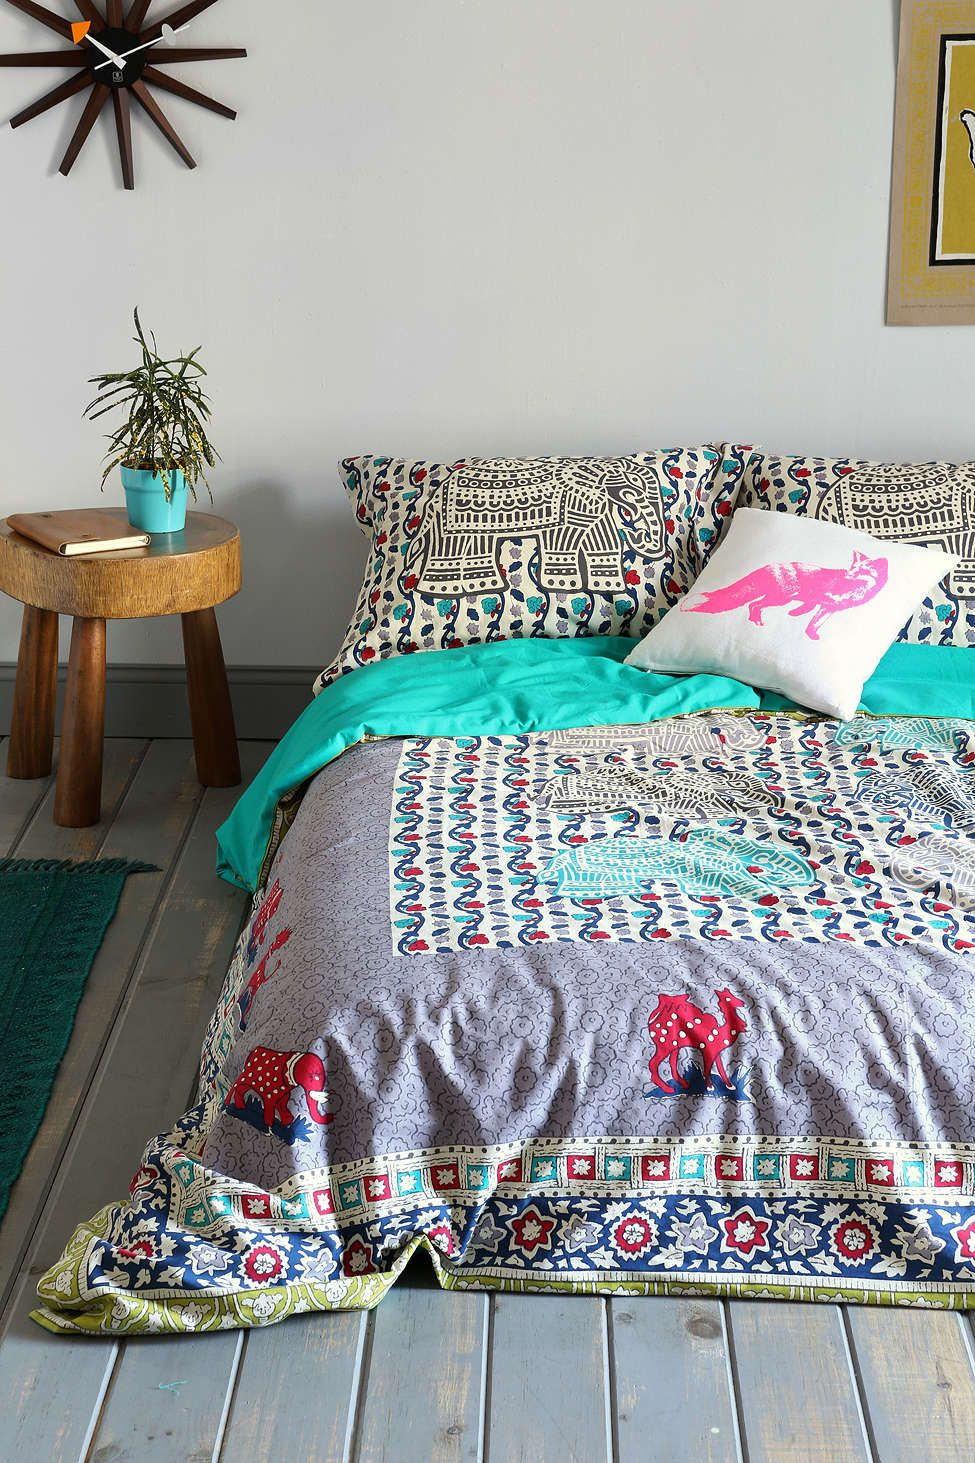 Magical Thinking Elephant Stamp Duvet Cover Home Duvet Covers Urban Outfitters Dorm Bedding